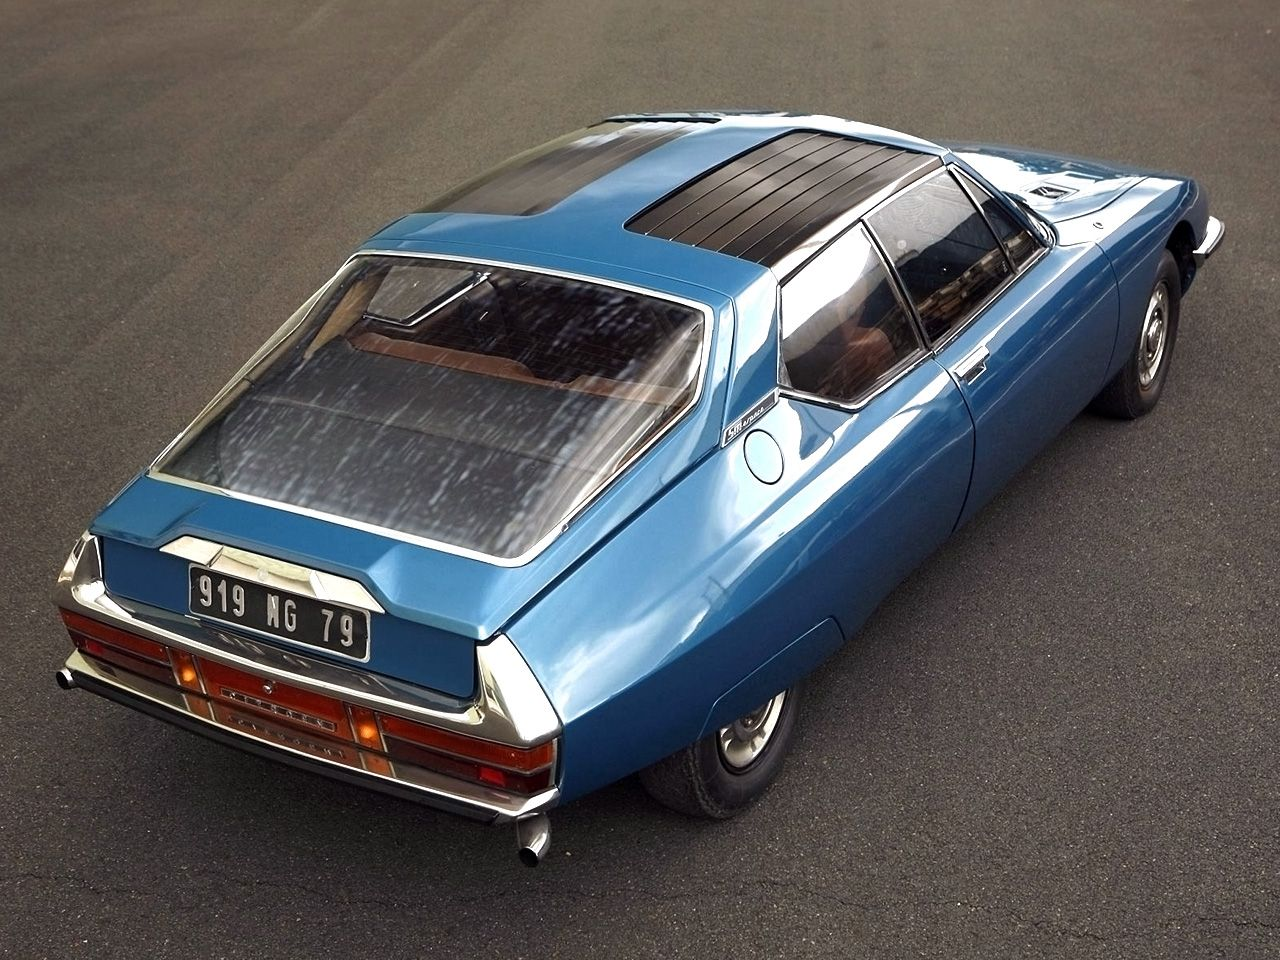 citroen sm espace by heuliez duck pic ds org pinterest cars maserati and wheels. Black Bedroom Furniture Sets. Home Design Ideas